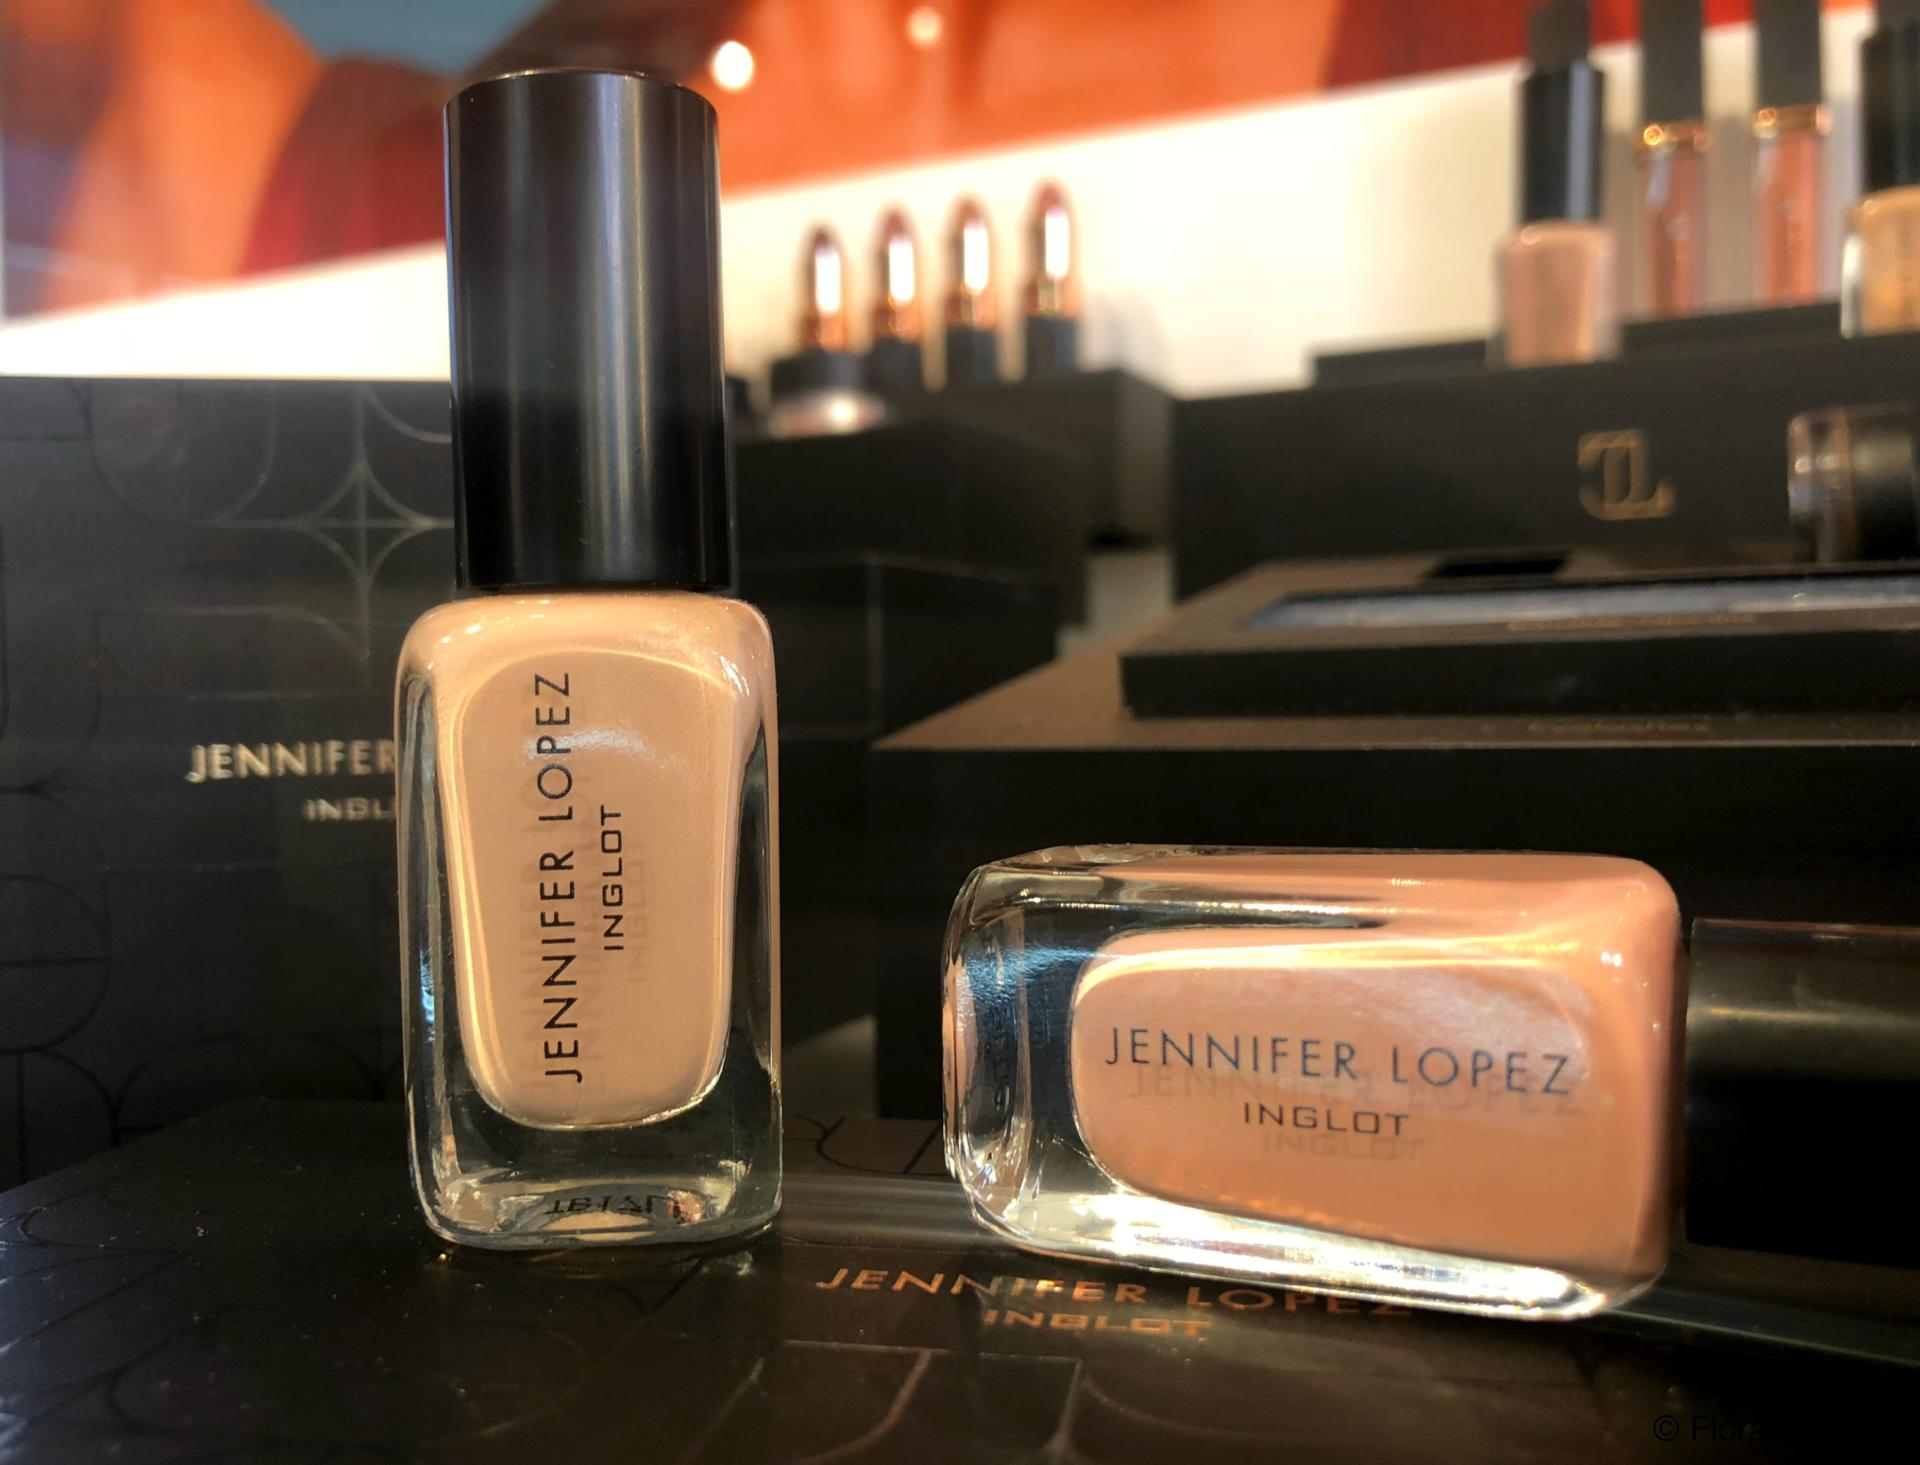 JLO X Inglot Collection - Get that JLO Glow